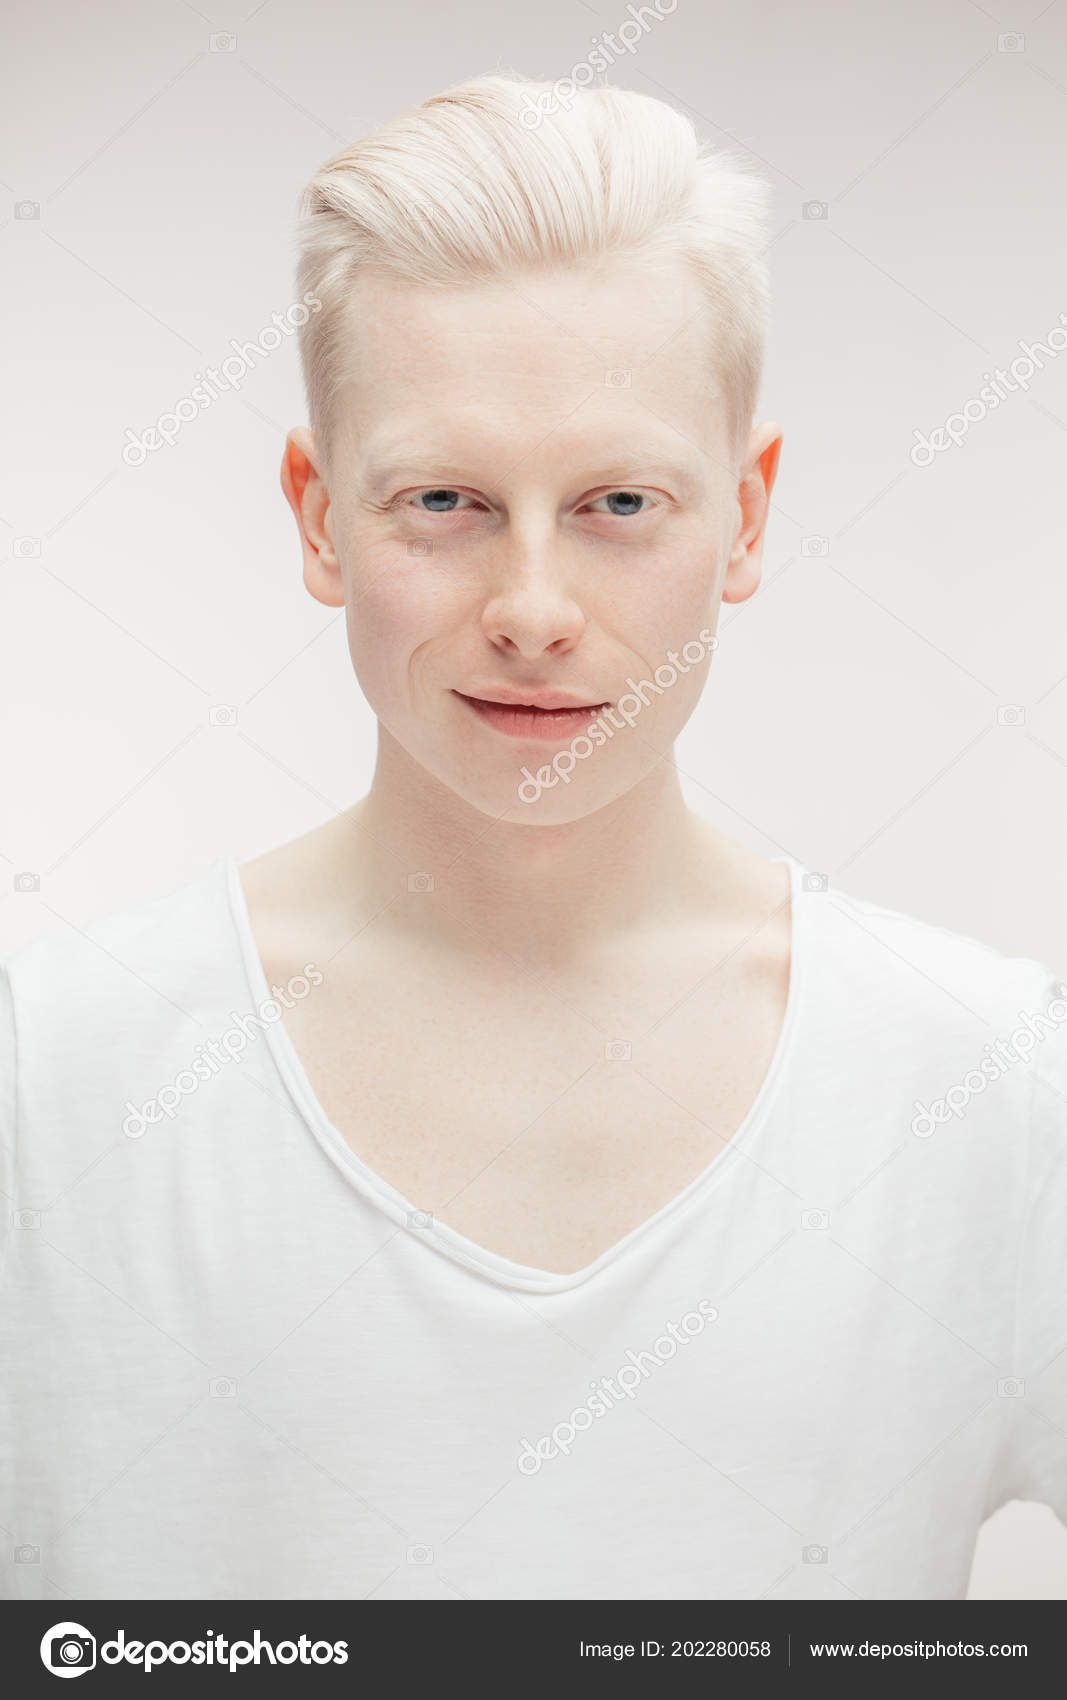 Men With Natural White Blonde Hair